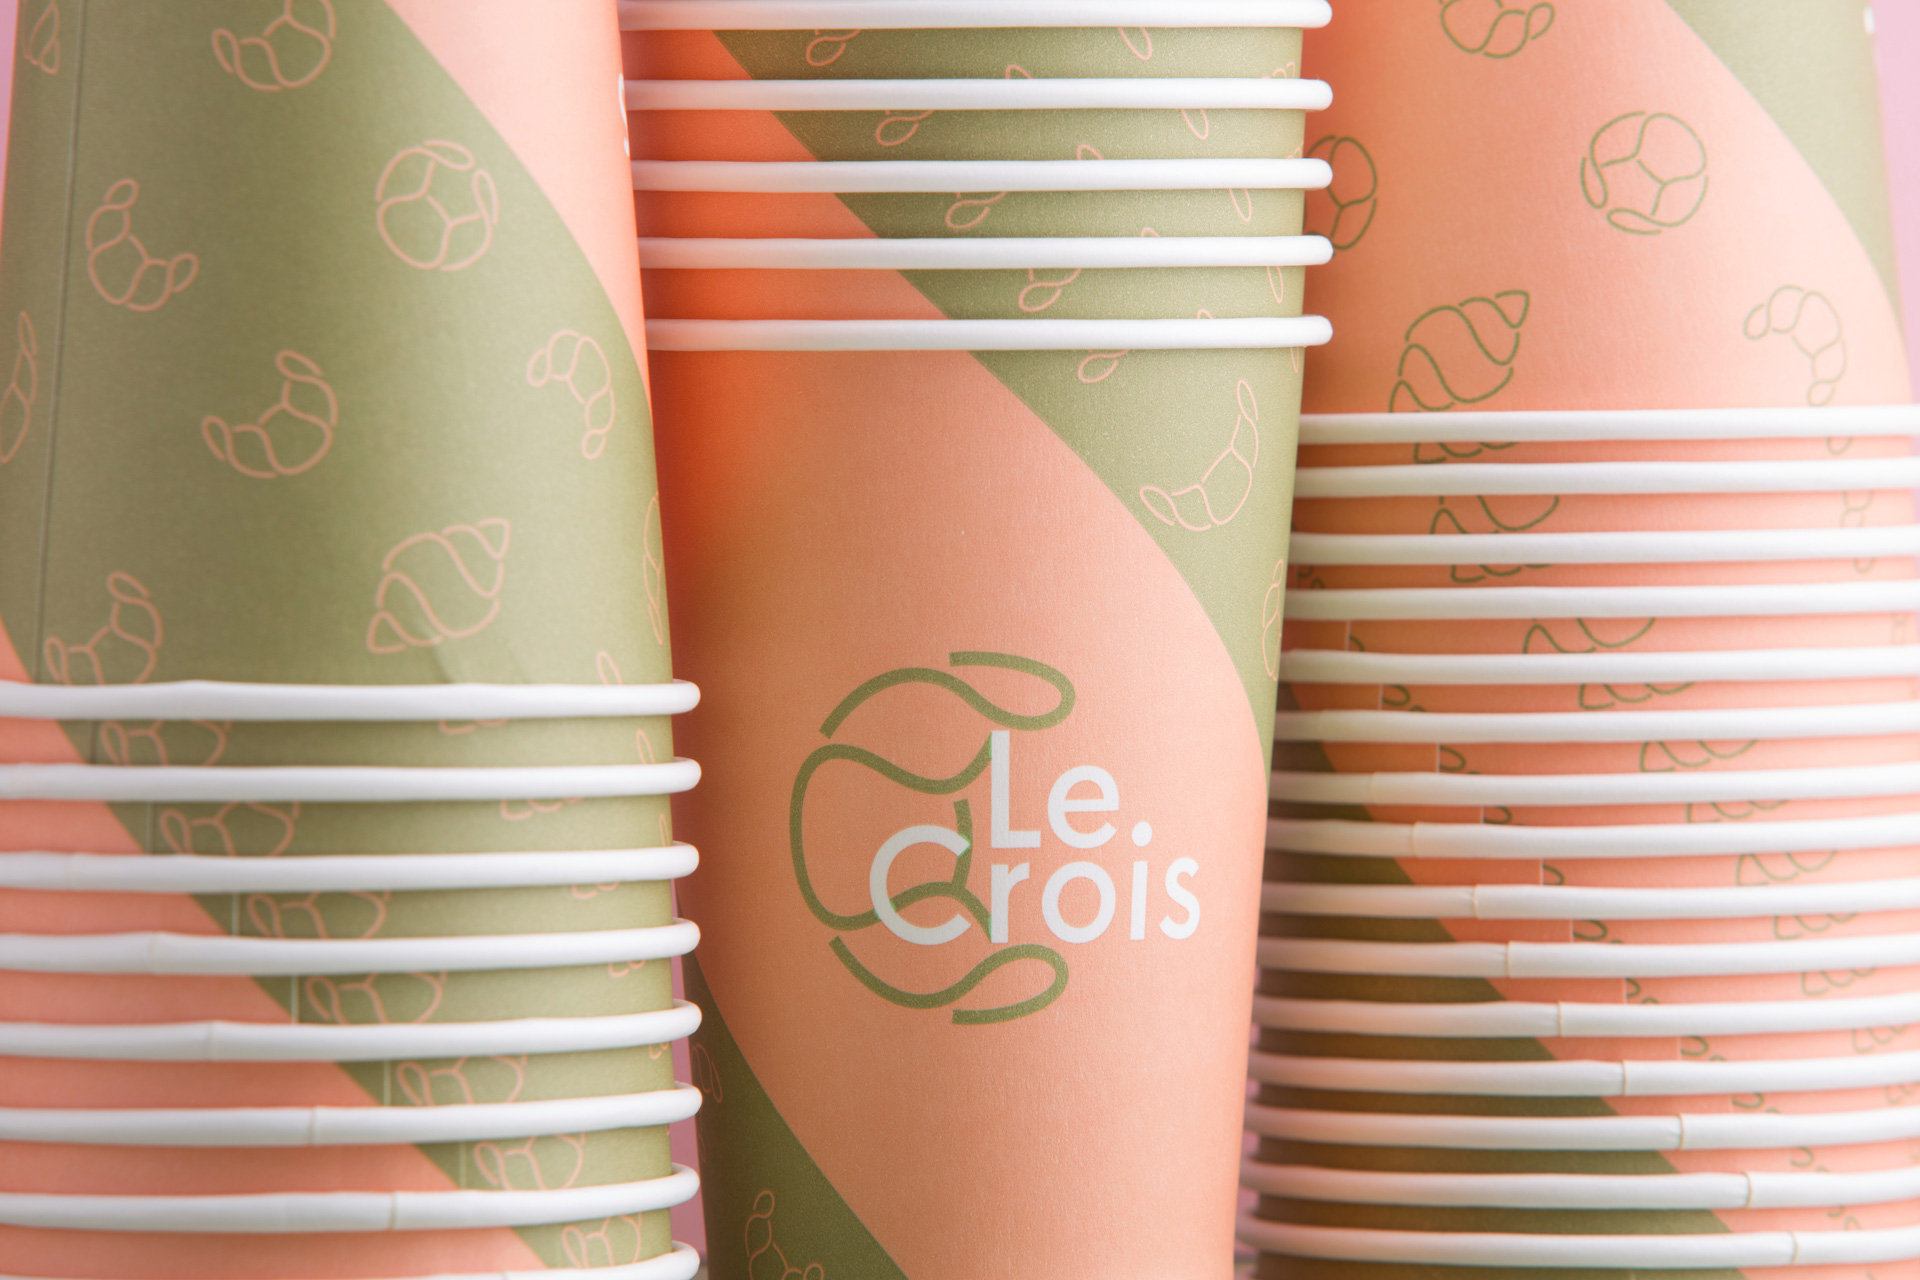 Le Crois coffee cup